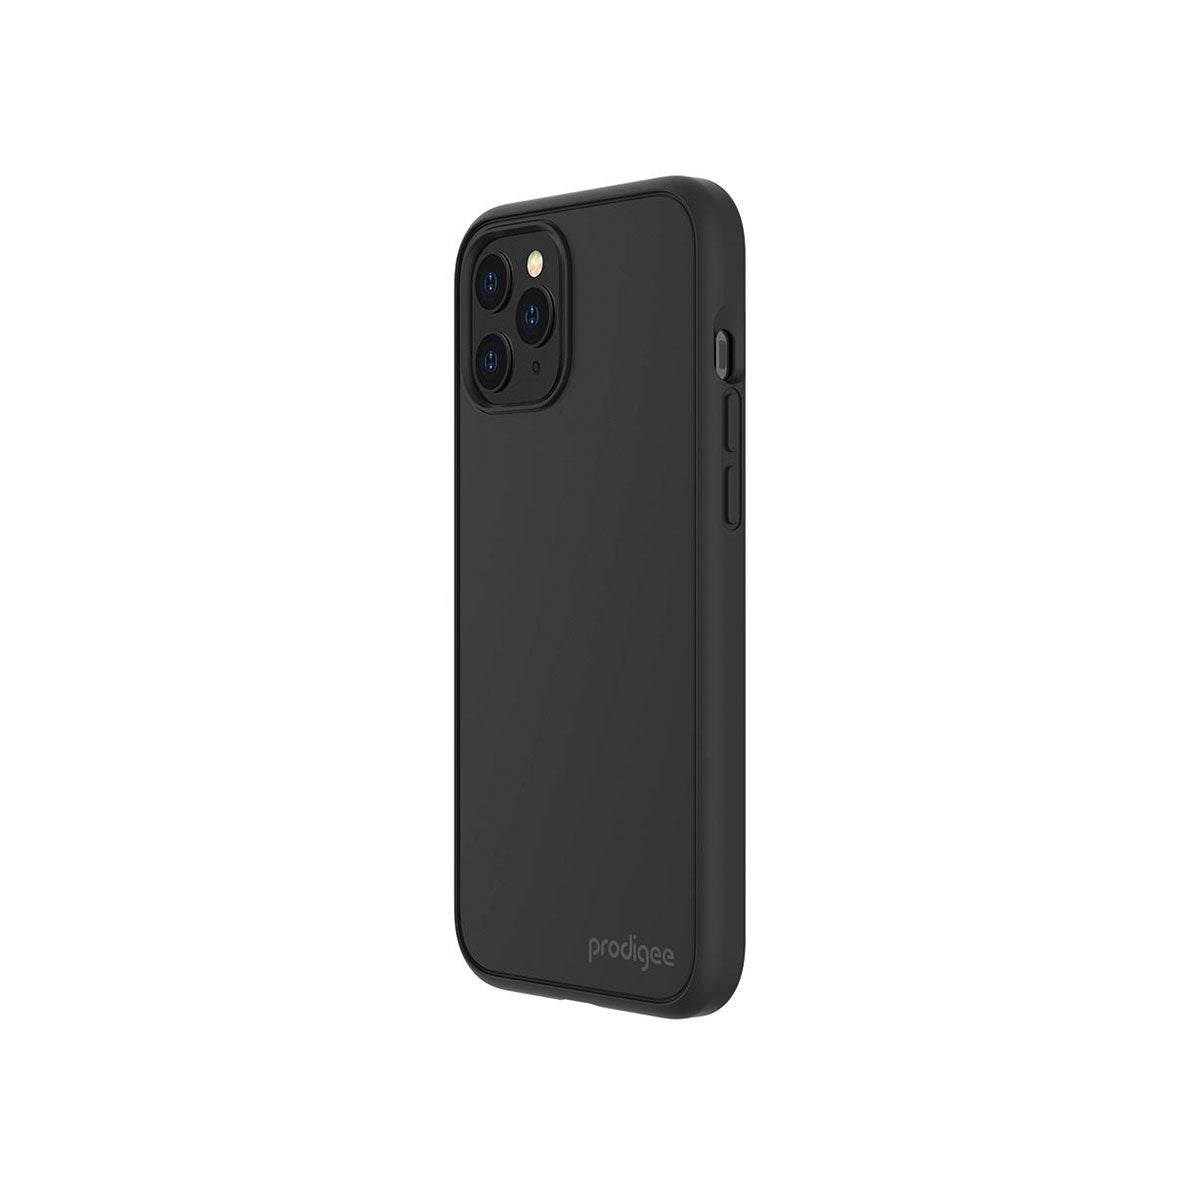 Capa de Smartphone Prodigee Safetee Smooth Apple iPhone 12 Pro Max Preto